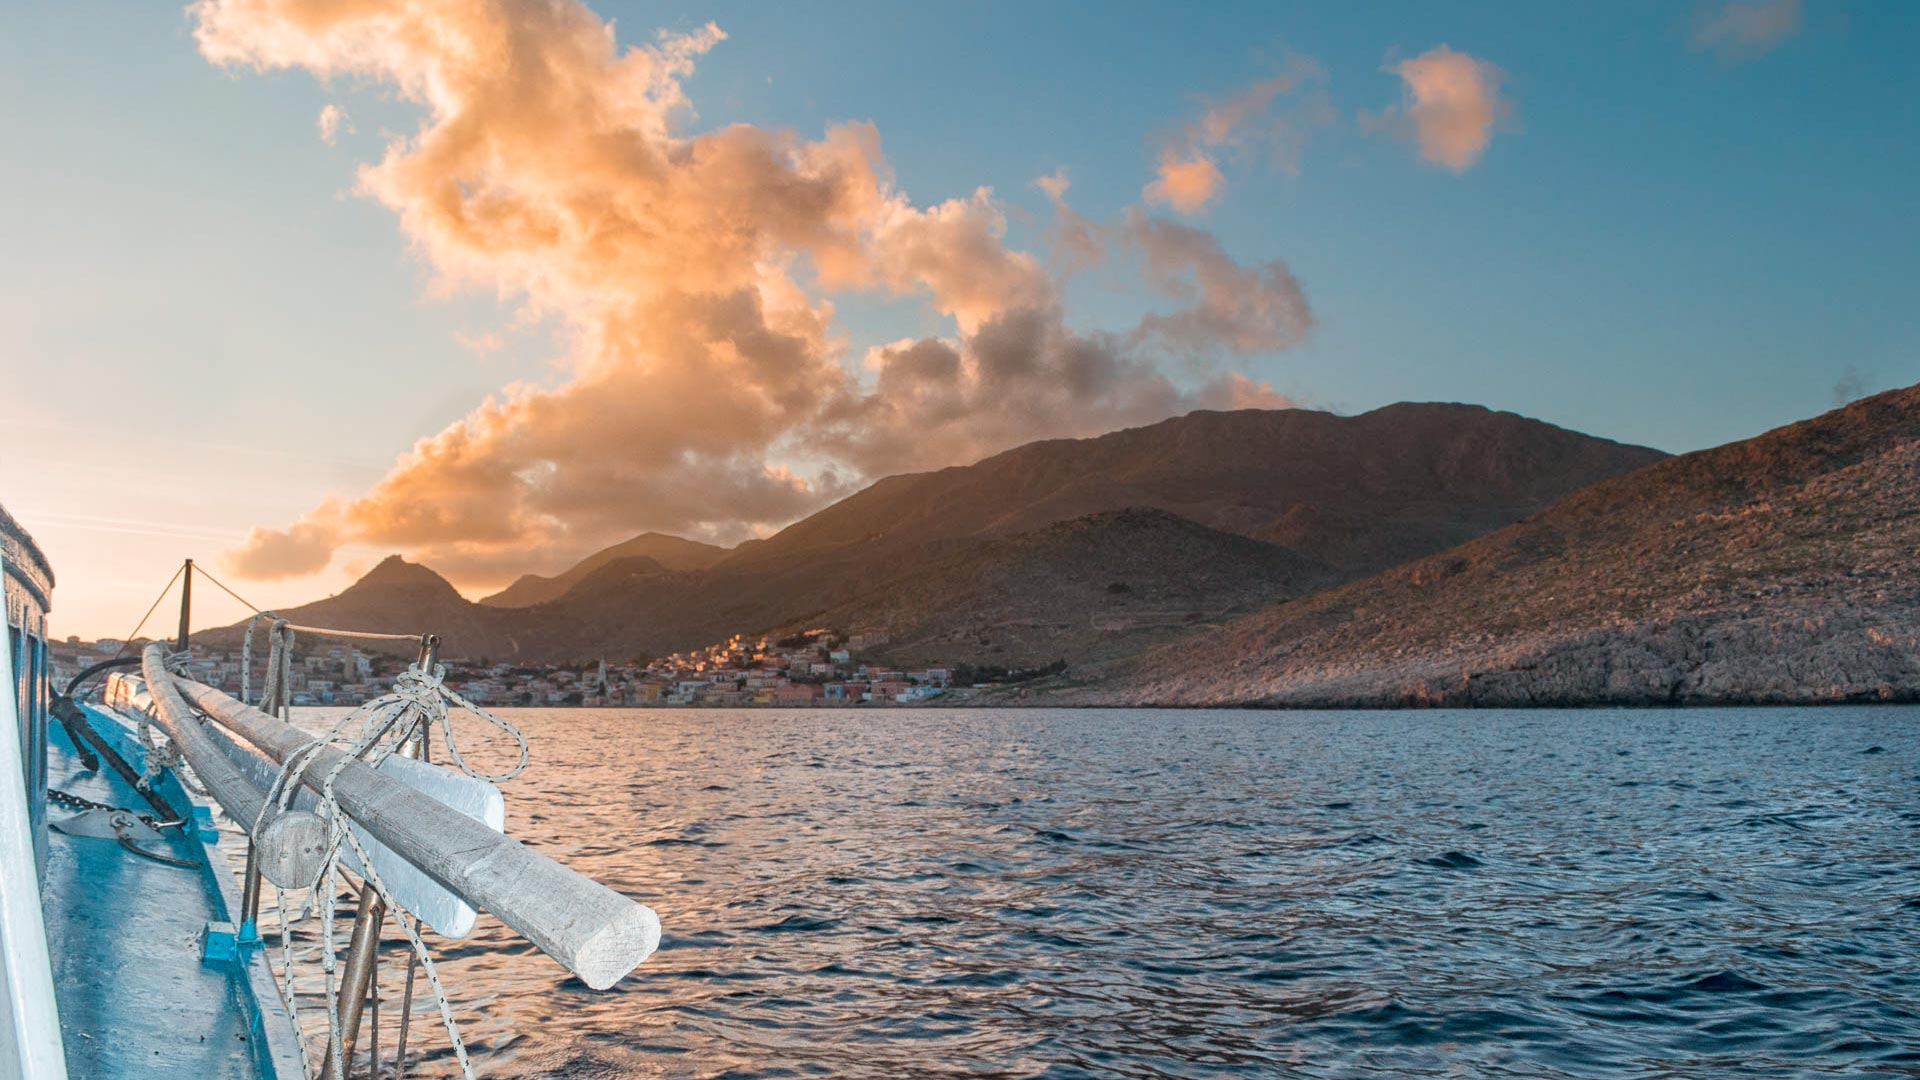 a daytrip from Rhodes to the smallest of the Dodecanese islands, with aristocratic mansion houses, quaint alleyways and age-old simple island life